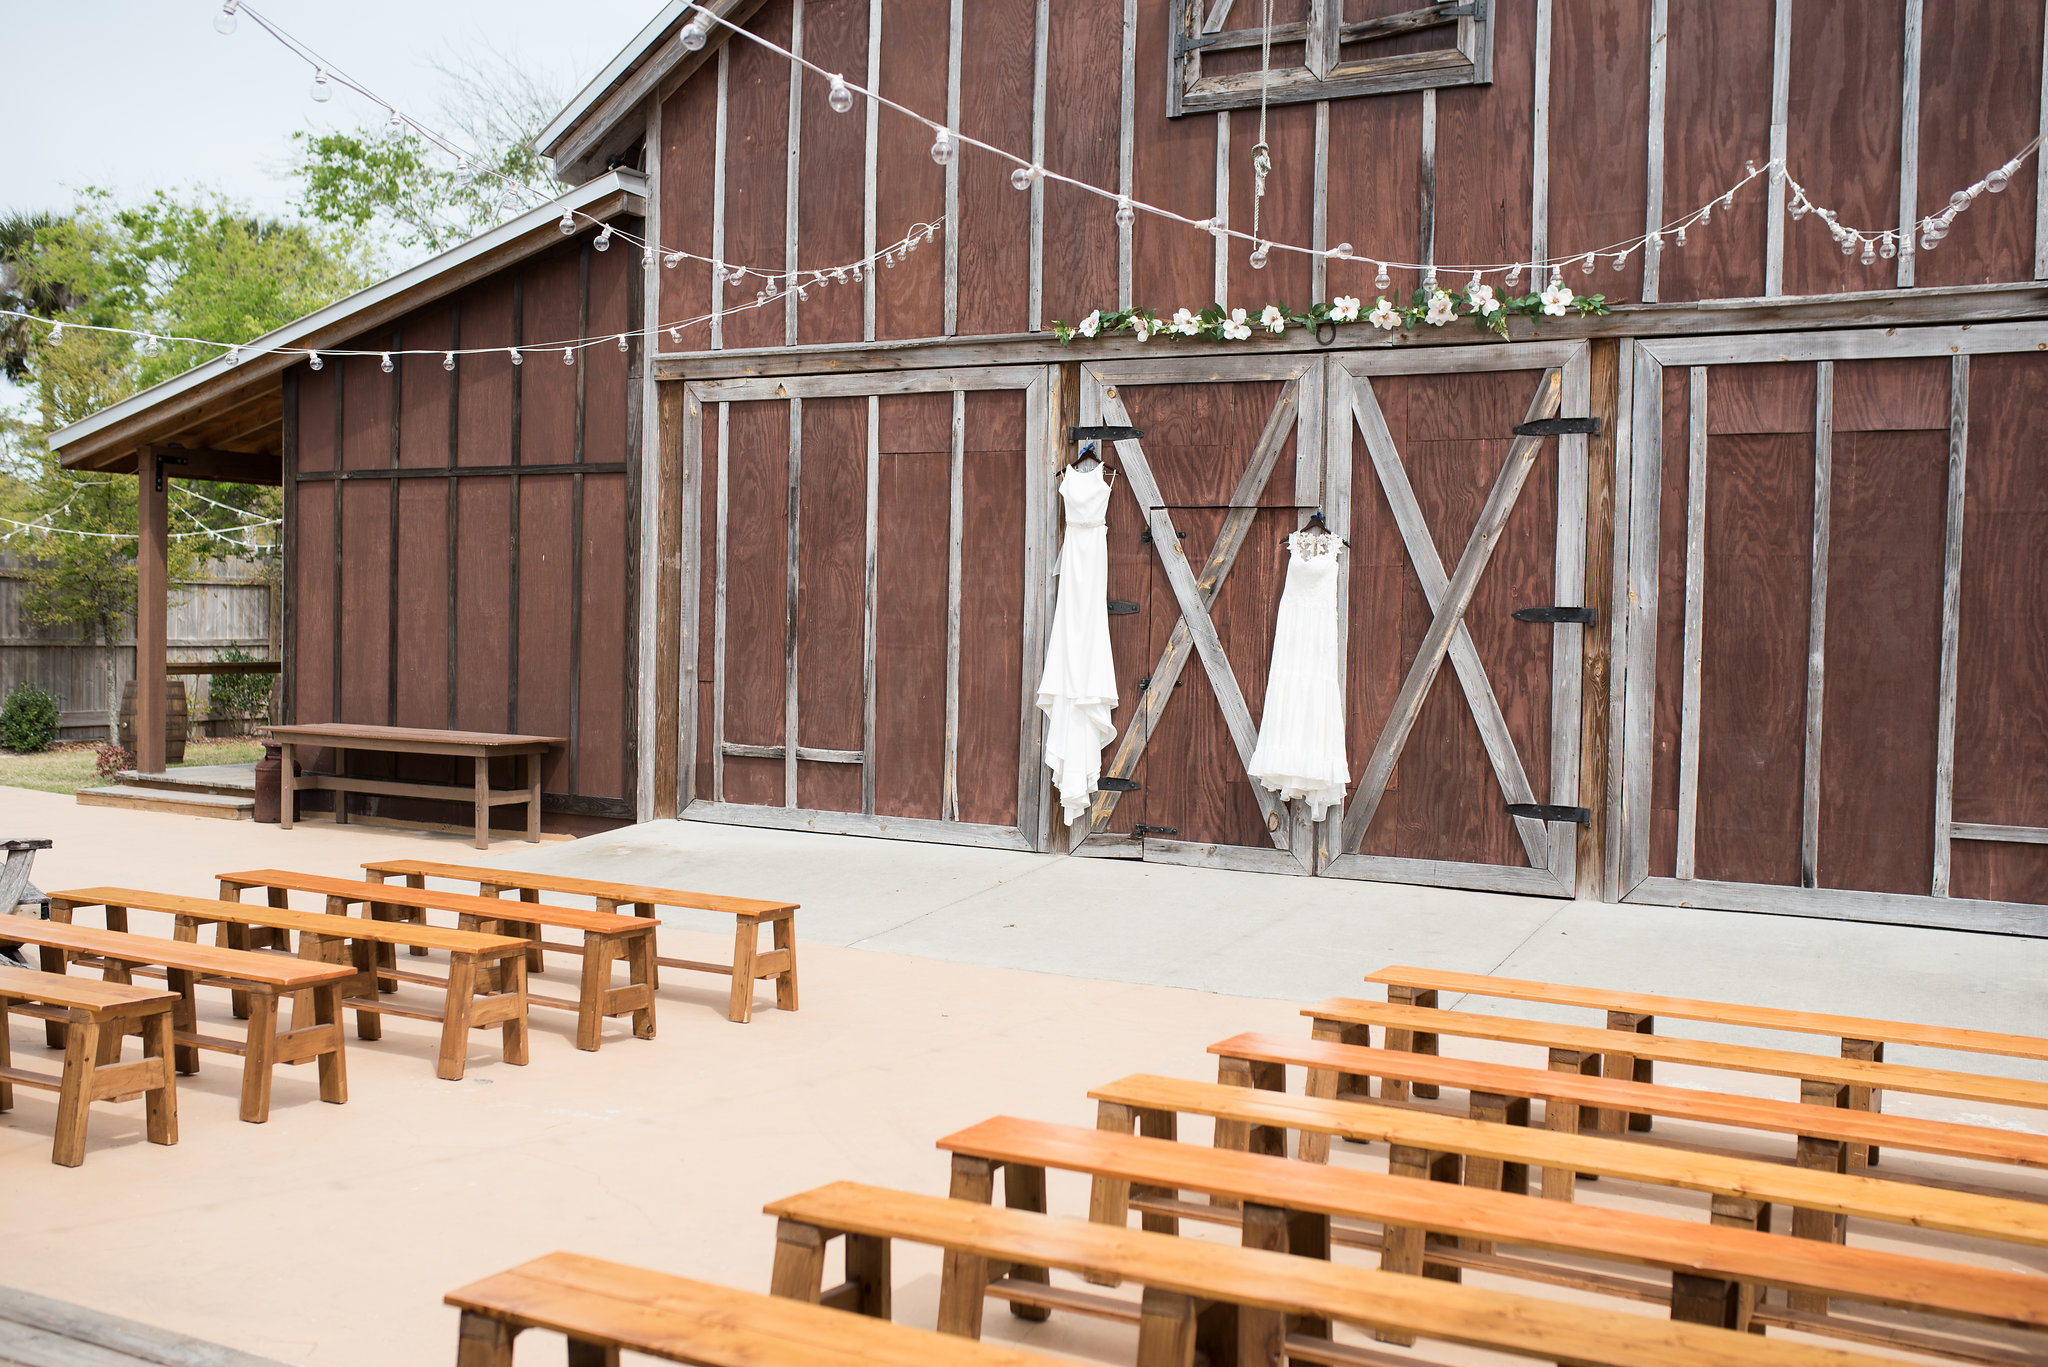 st-augustine-photographer-pioneer-barn-events-wedding-sarah-annay-photography-florida2.jpg